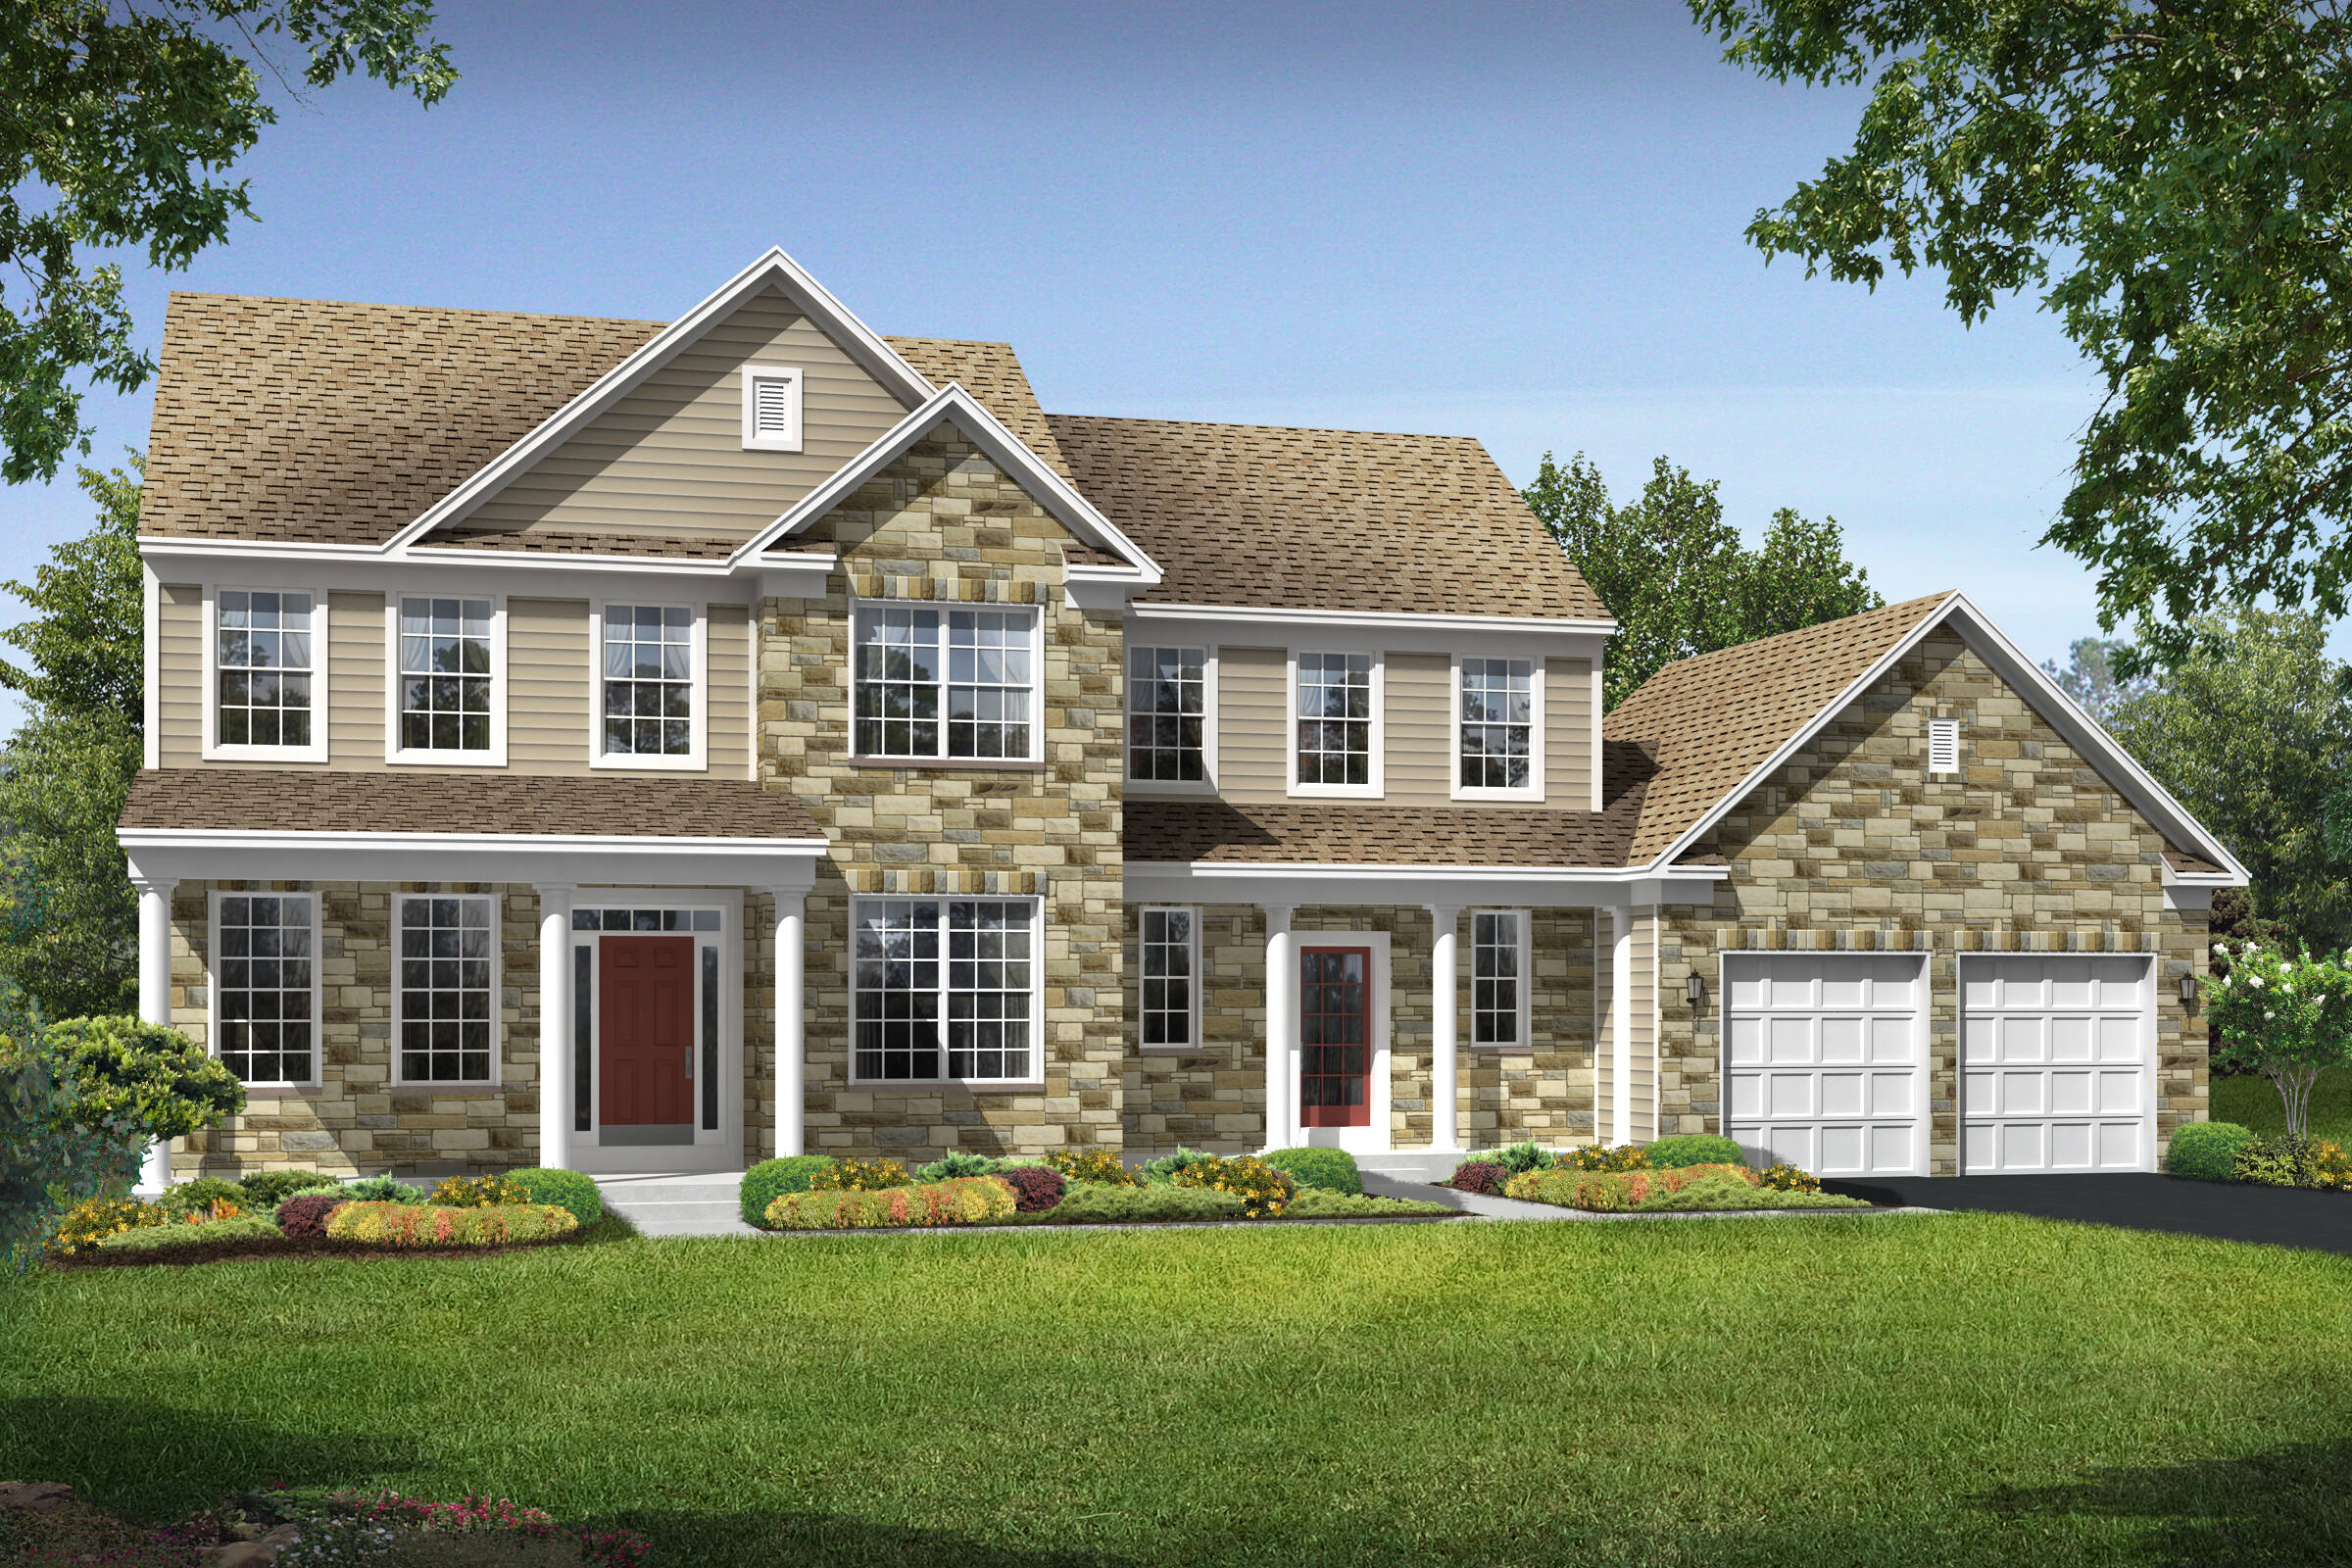 albany cts new homes at reserves at leeland station in virginia